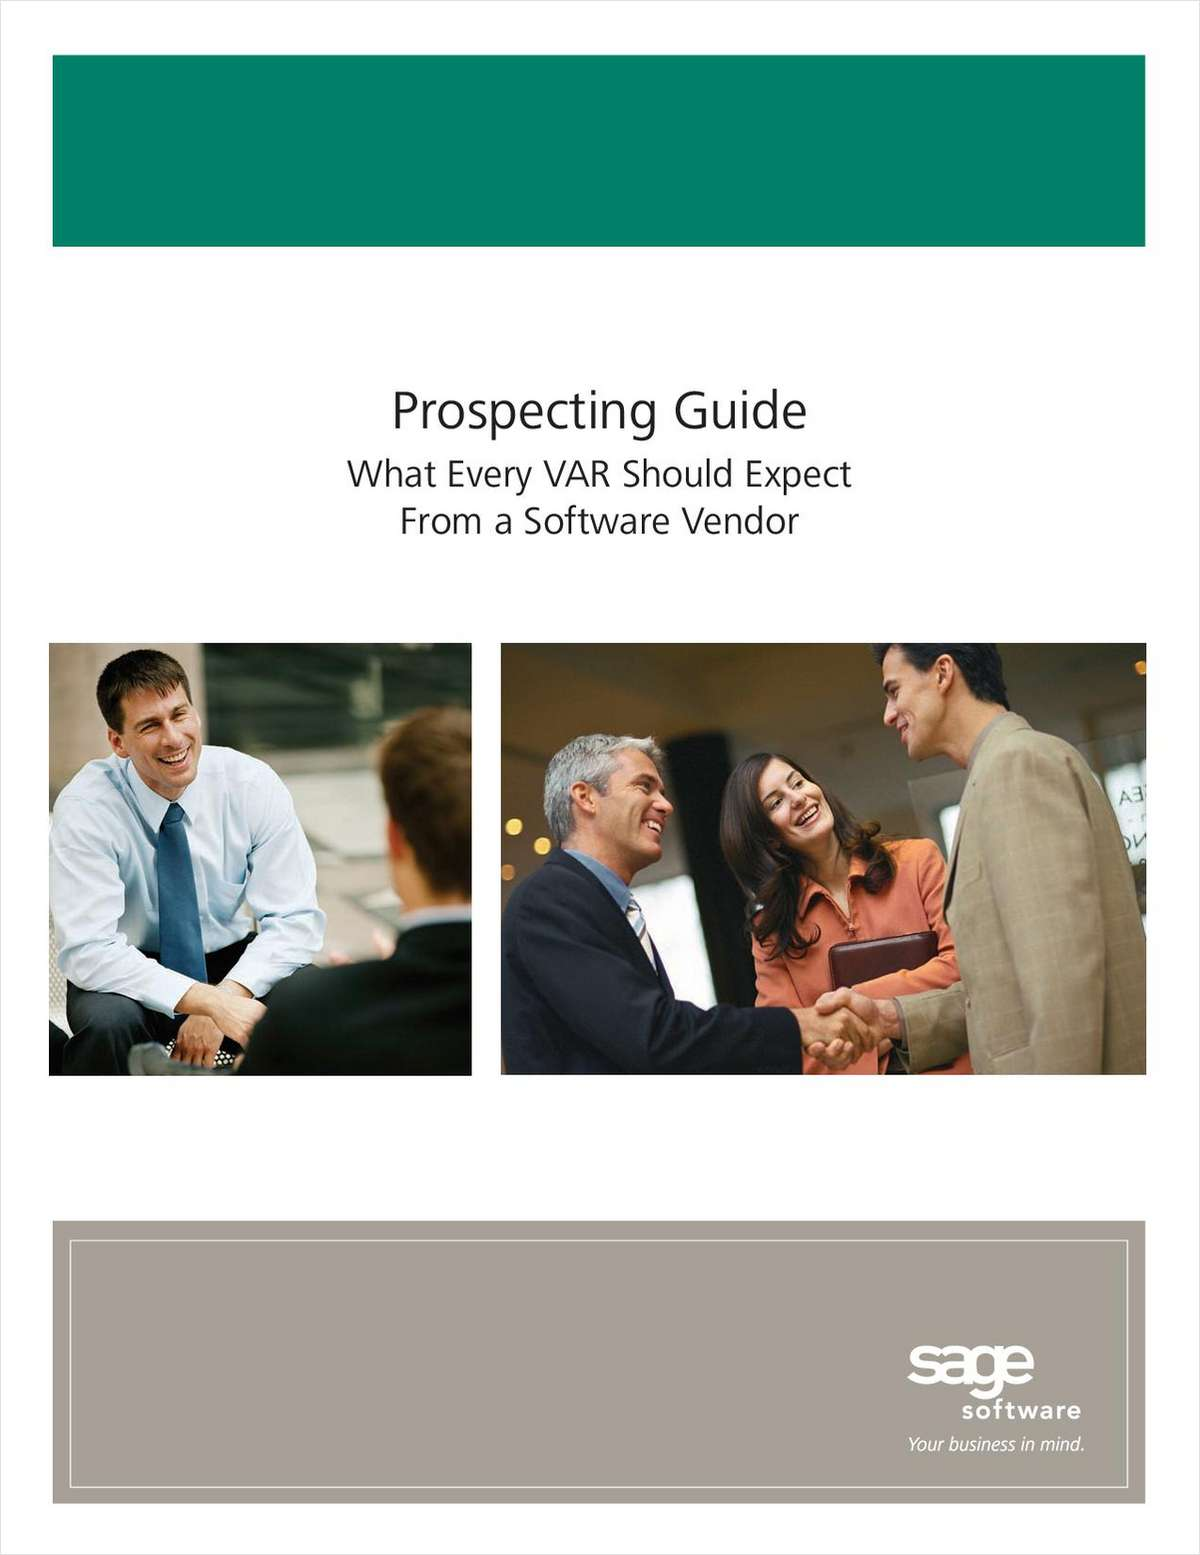 Prospecting Guide: What Every VAR Should Expect From a Software Vendor